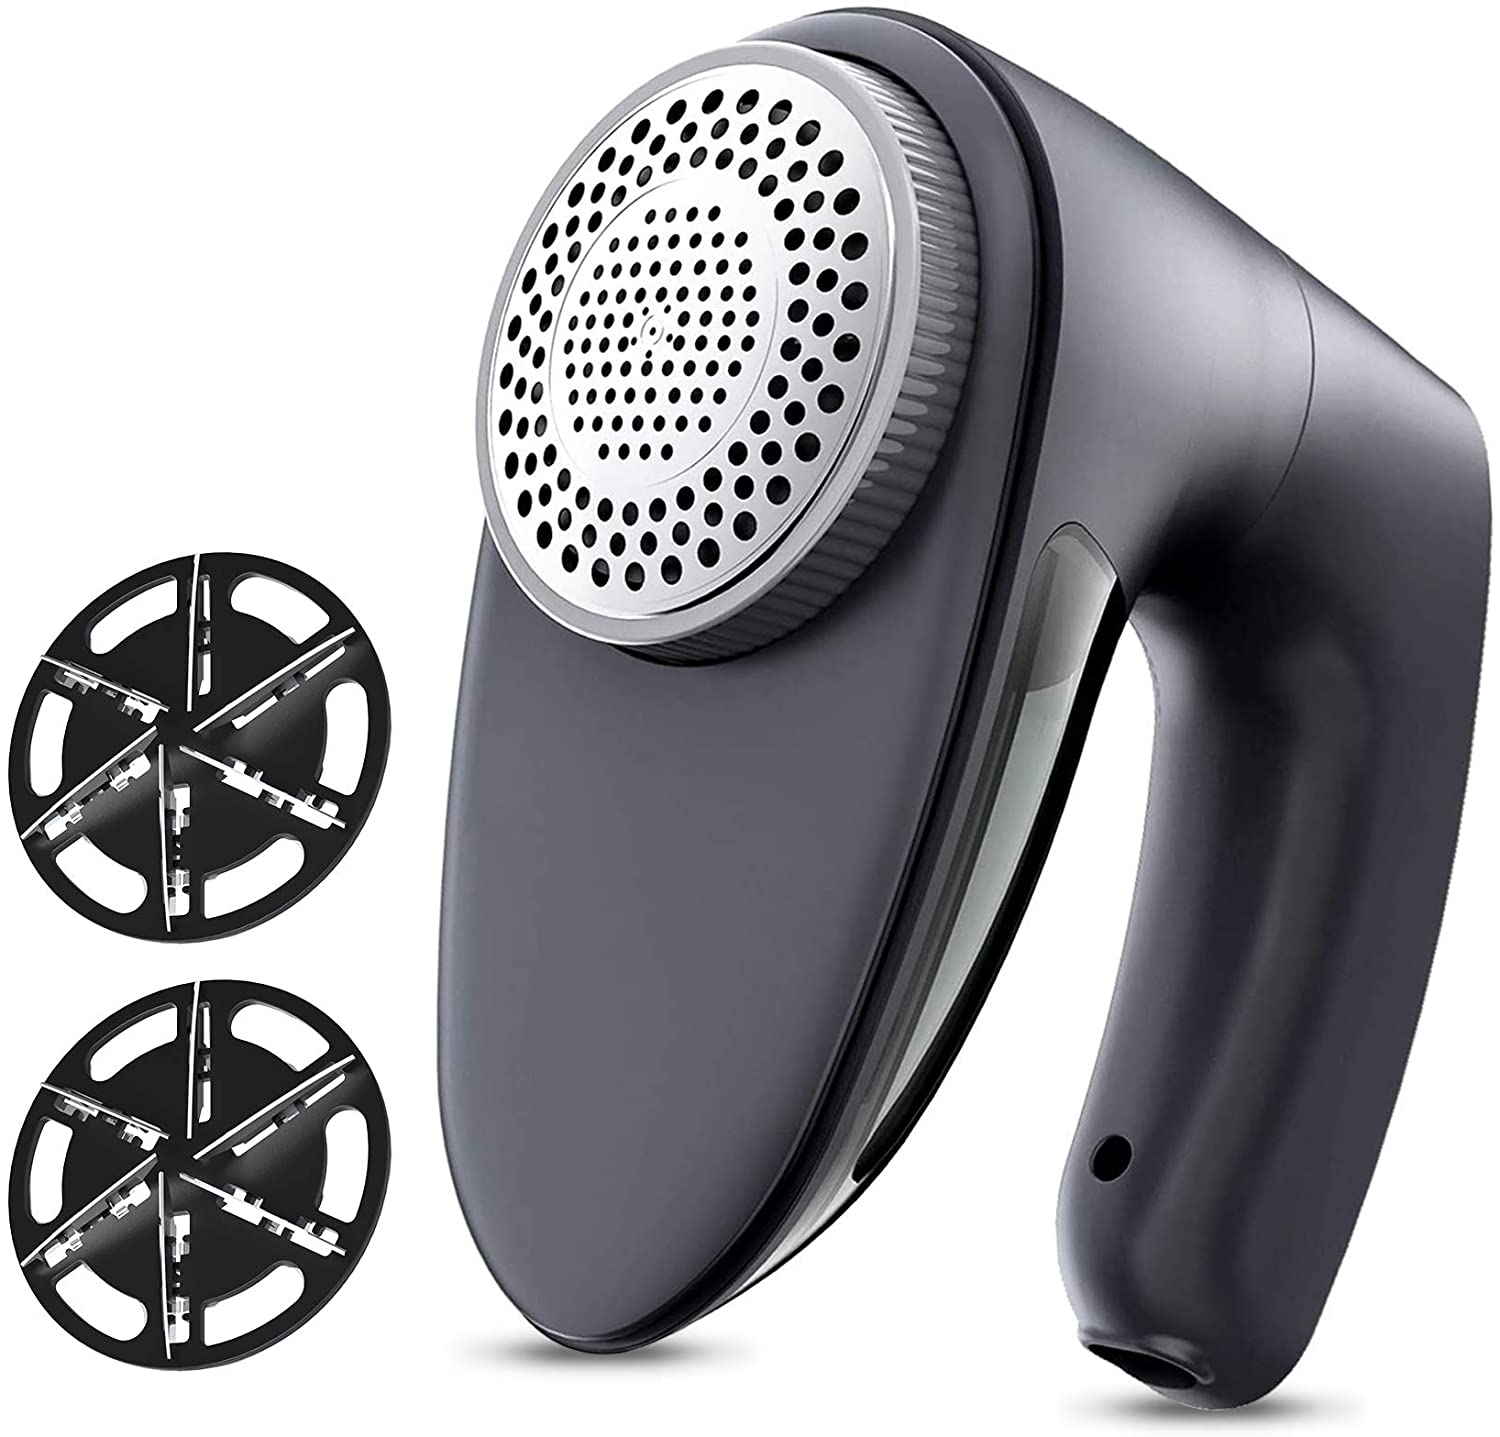 POPCHOSE Fabric Shaver - Rechargeable Lint Remover